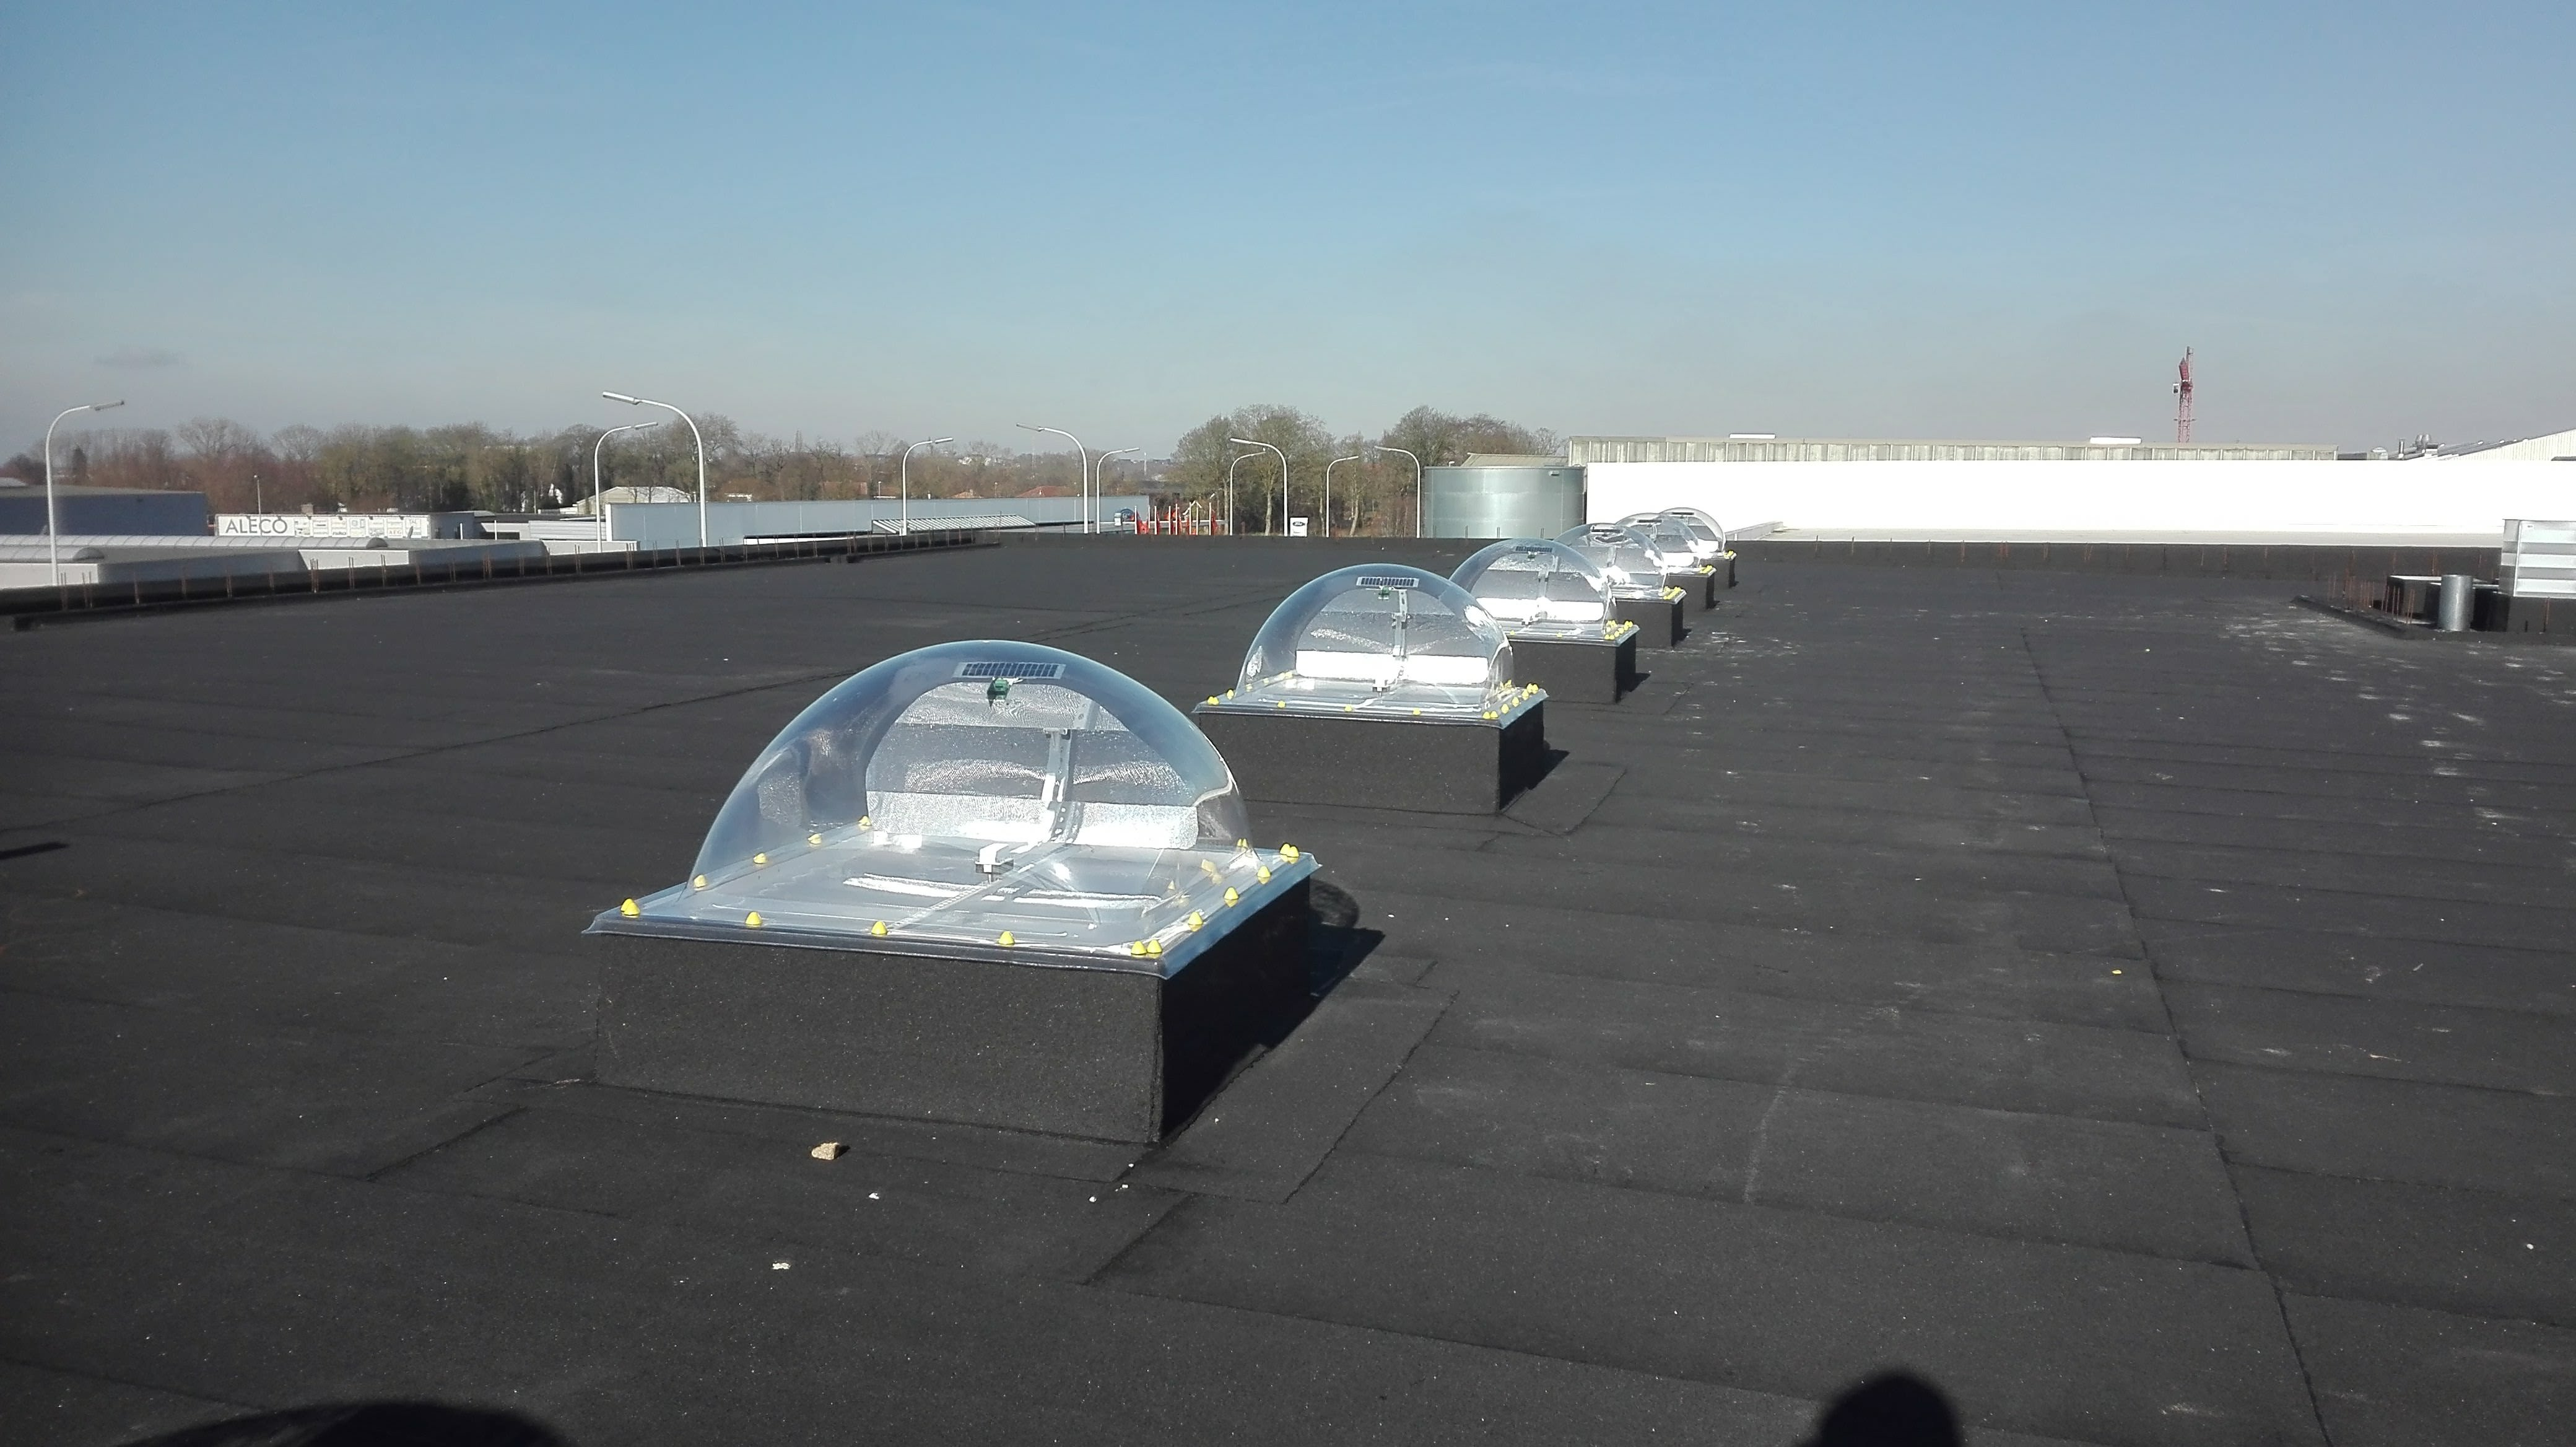 skylight-dome-bmw-dejonckheere-01